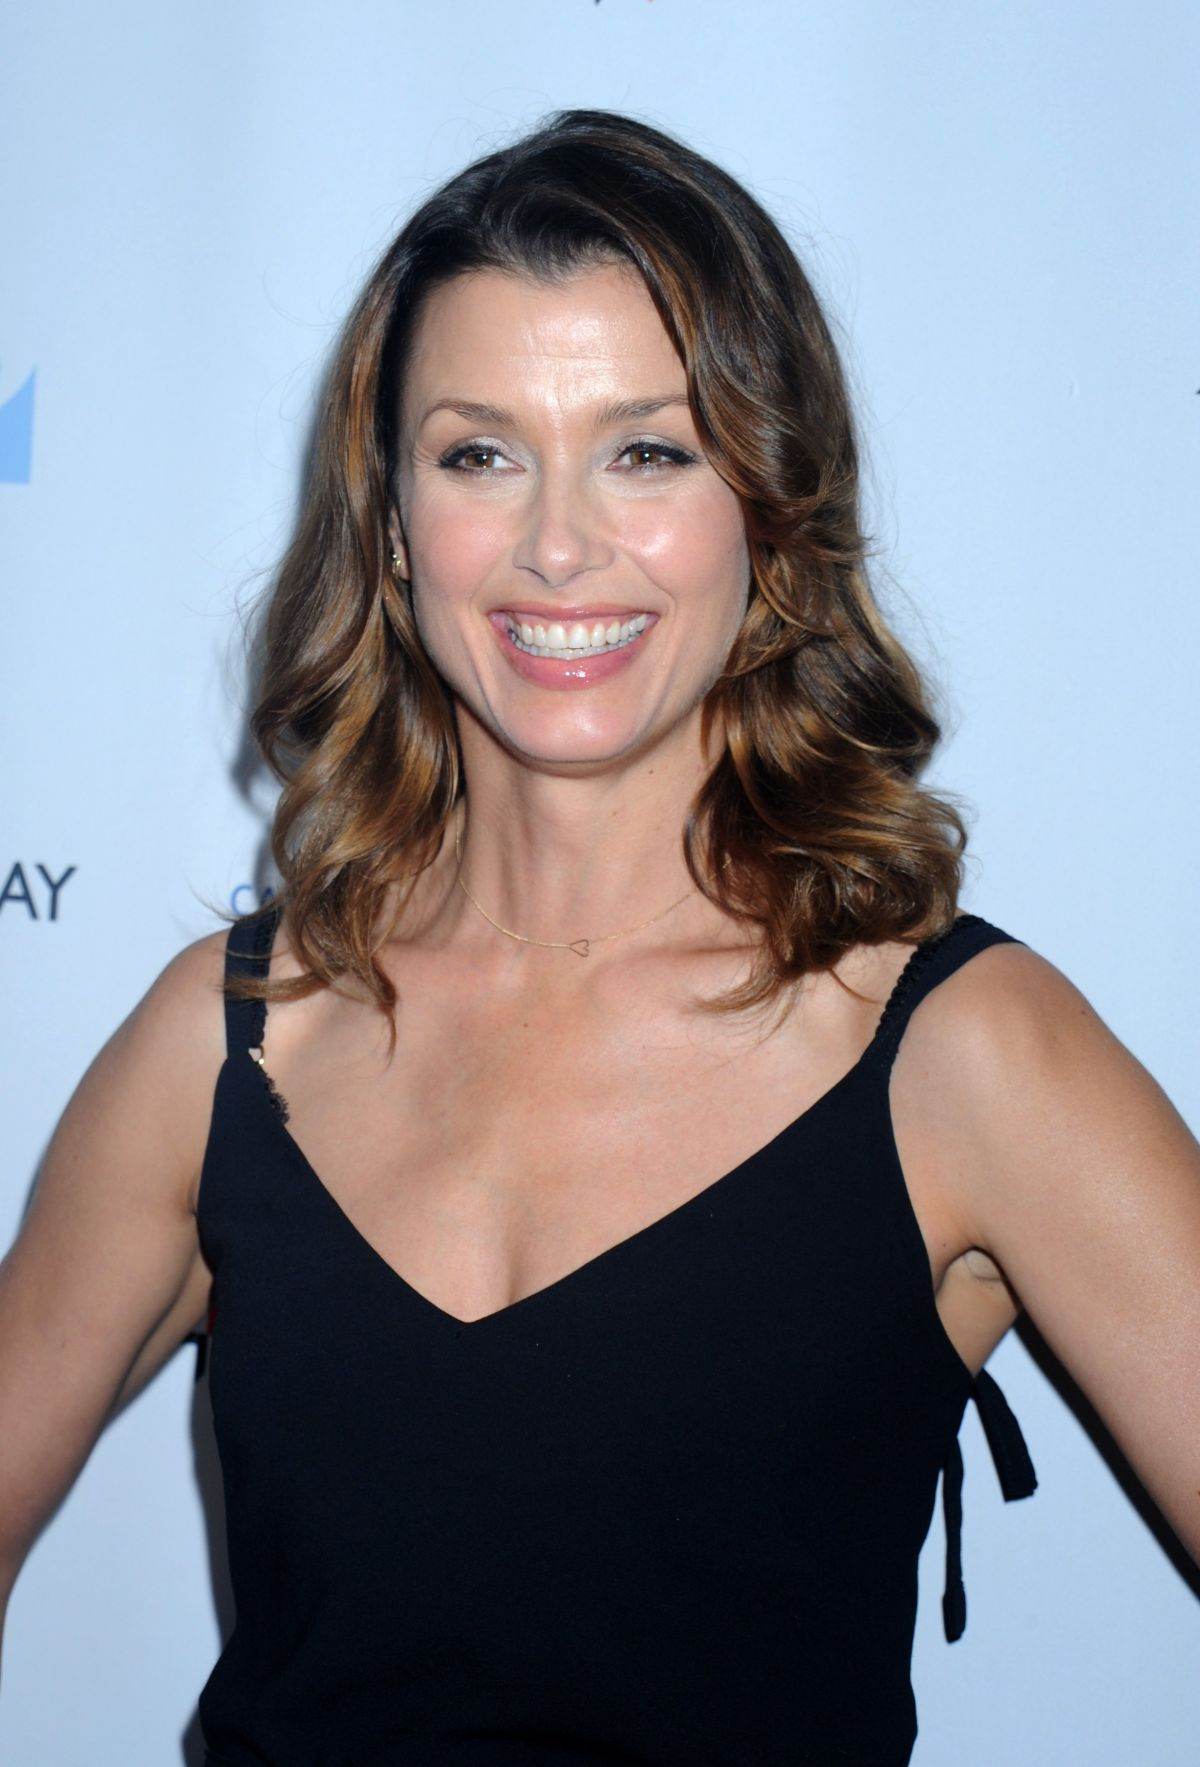 BRIDGET MOYNAHAN at Charity Day Hosted by Cantor Fitzgerald and BGC in New York